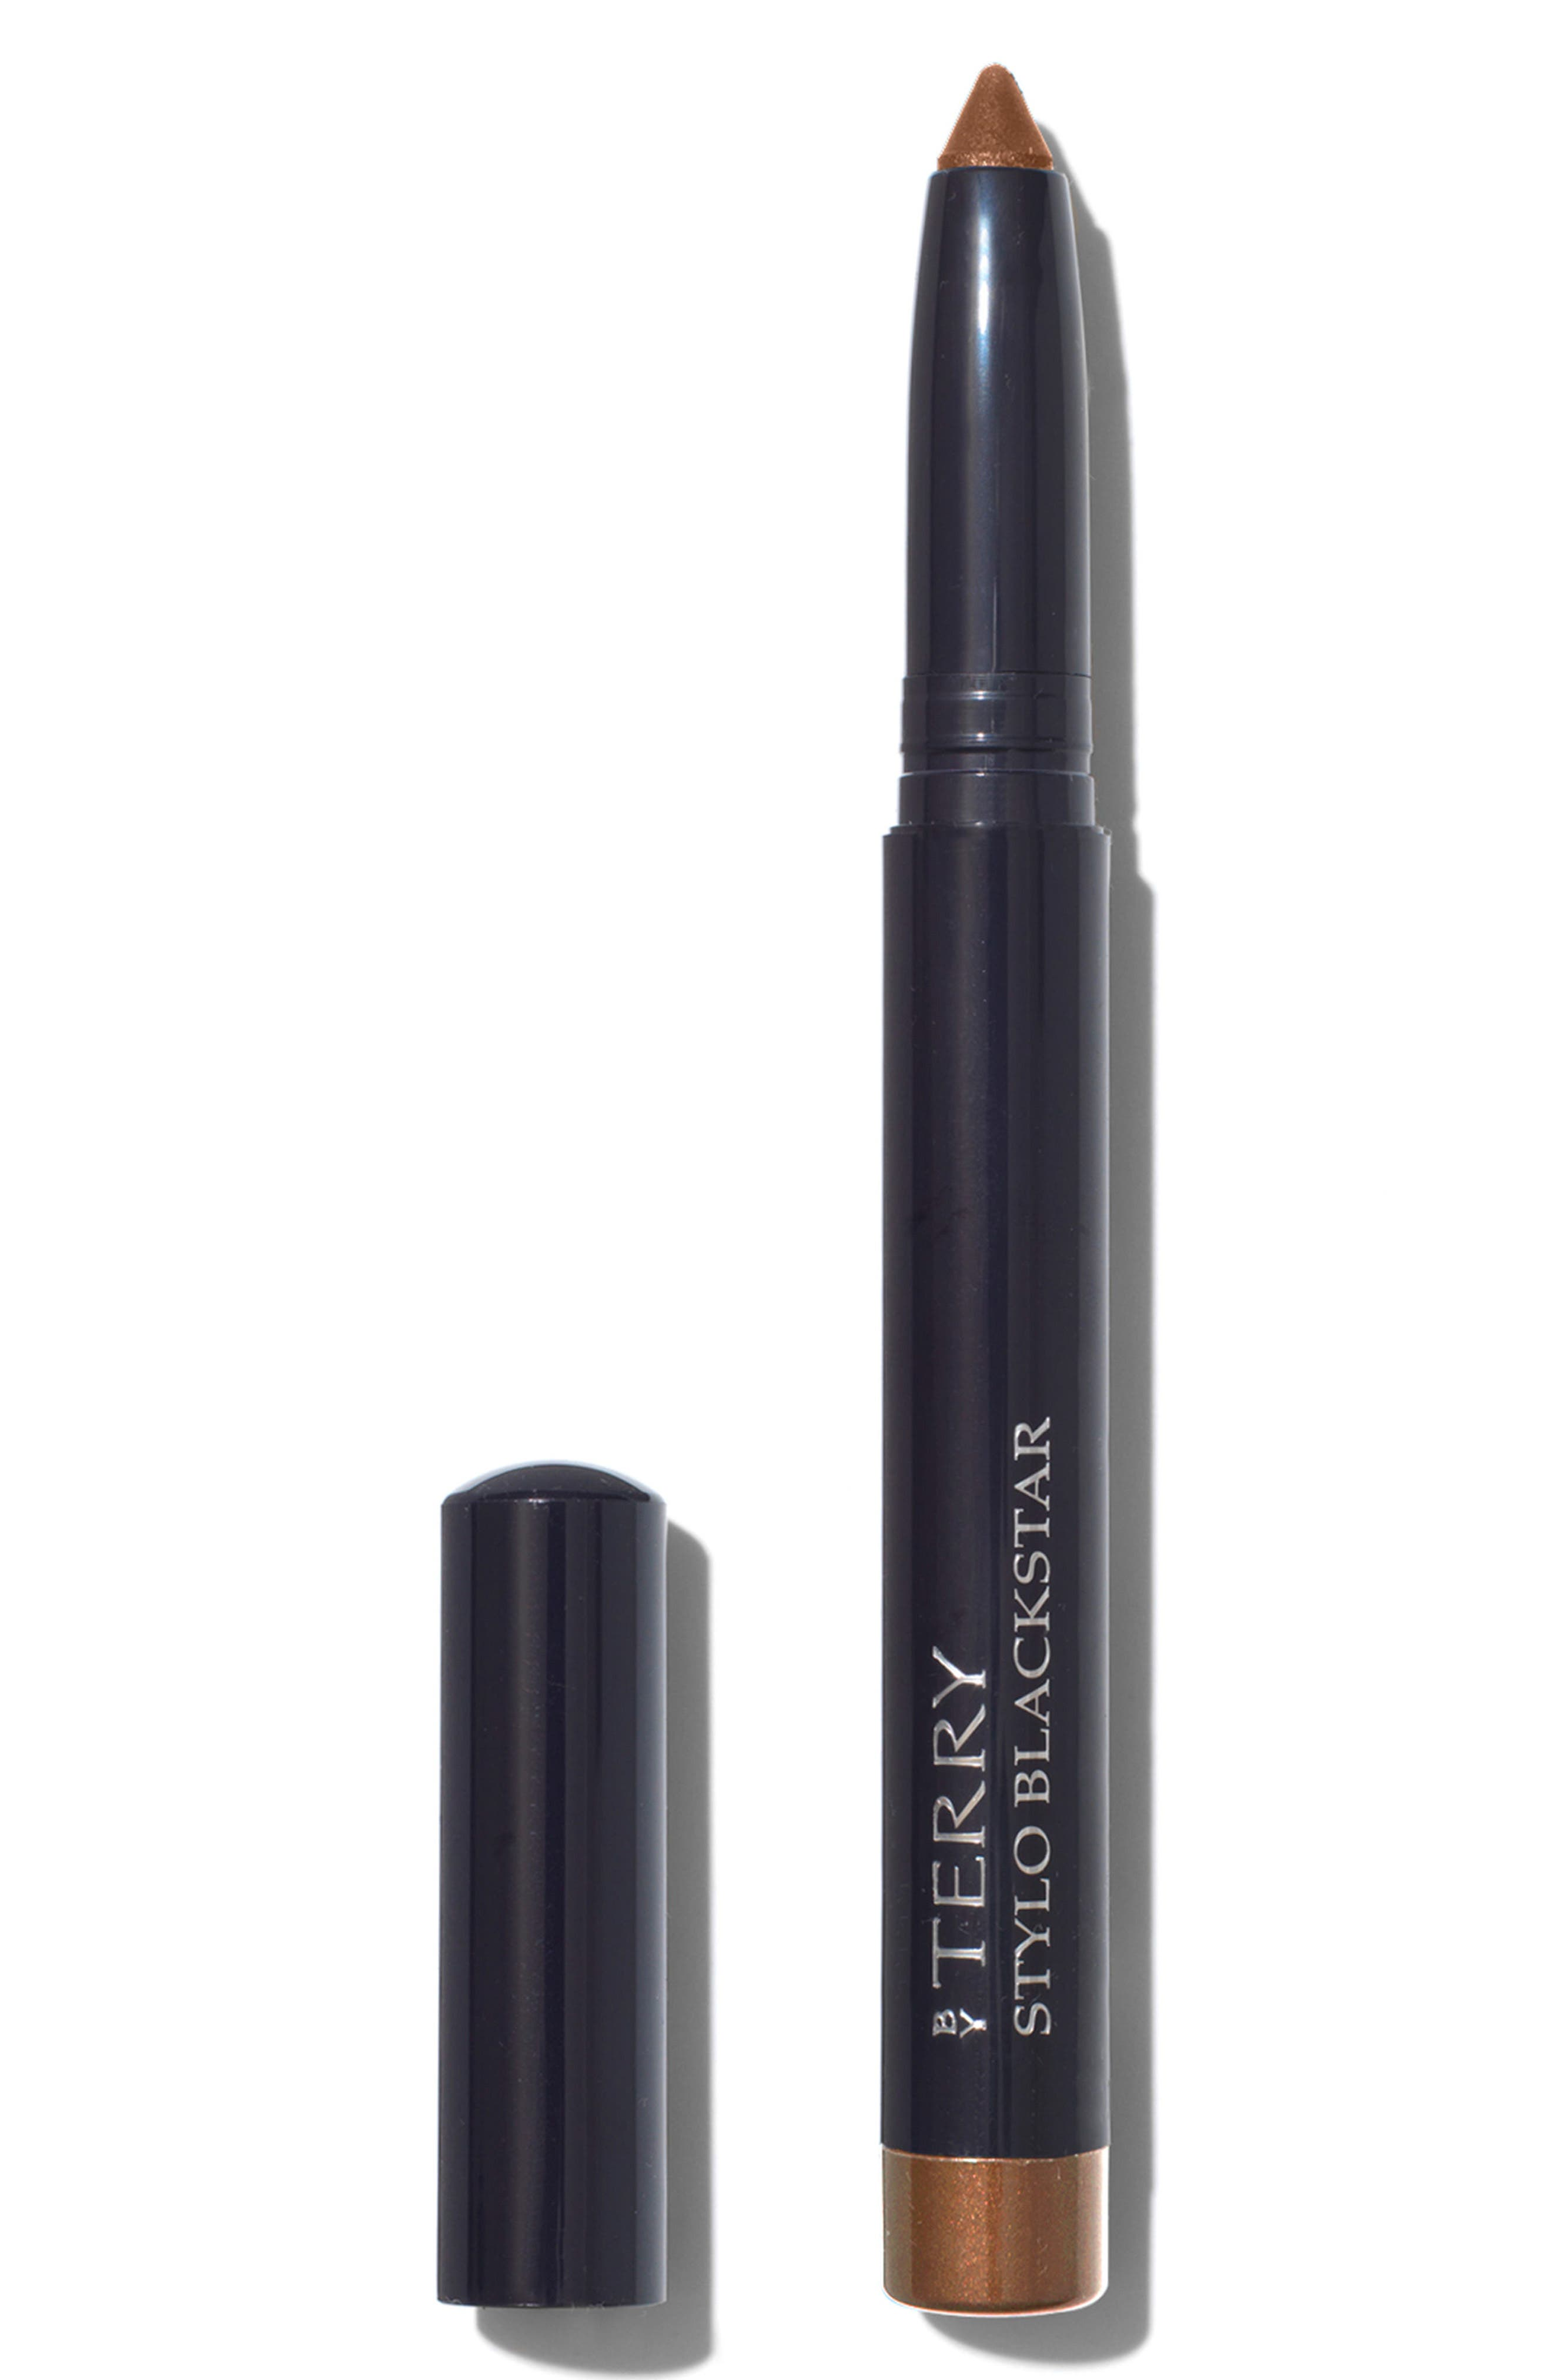 SPACE.NK.apothecary By Terry Stylo Blackstar Waterproof 3-in-1 Eye Pencil,                             Main thumbnail 1, color,                             4 Copper Crush